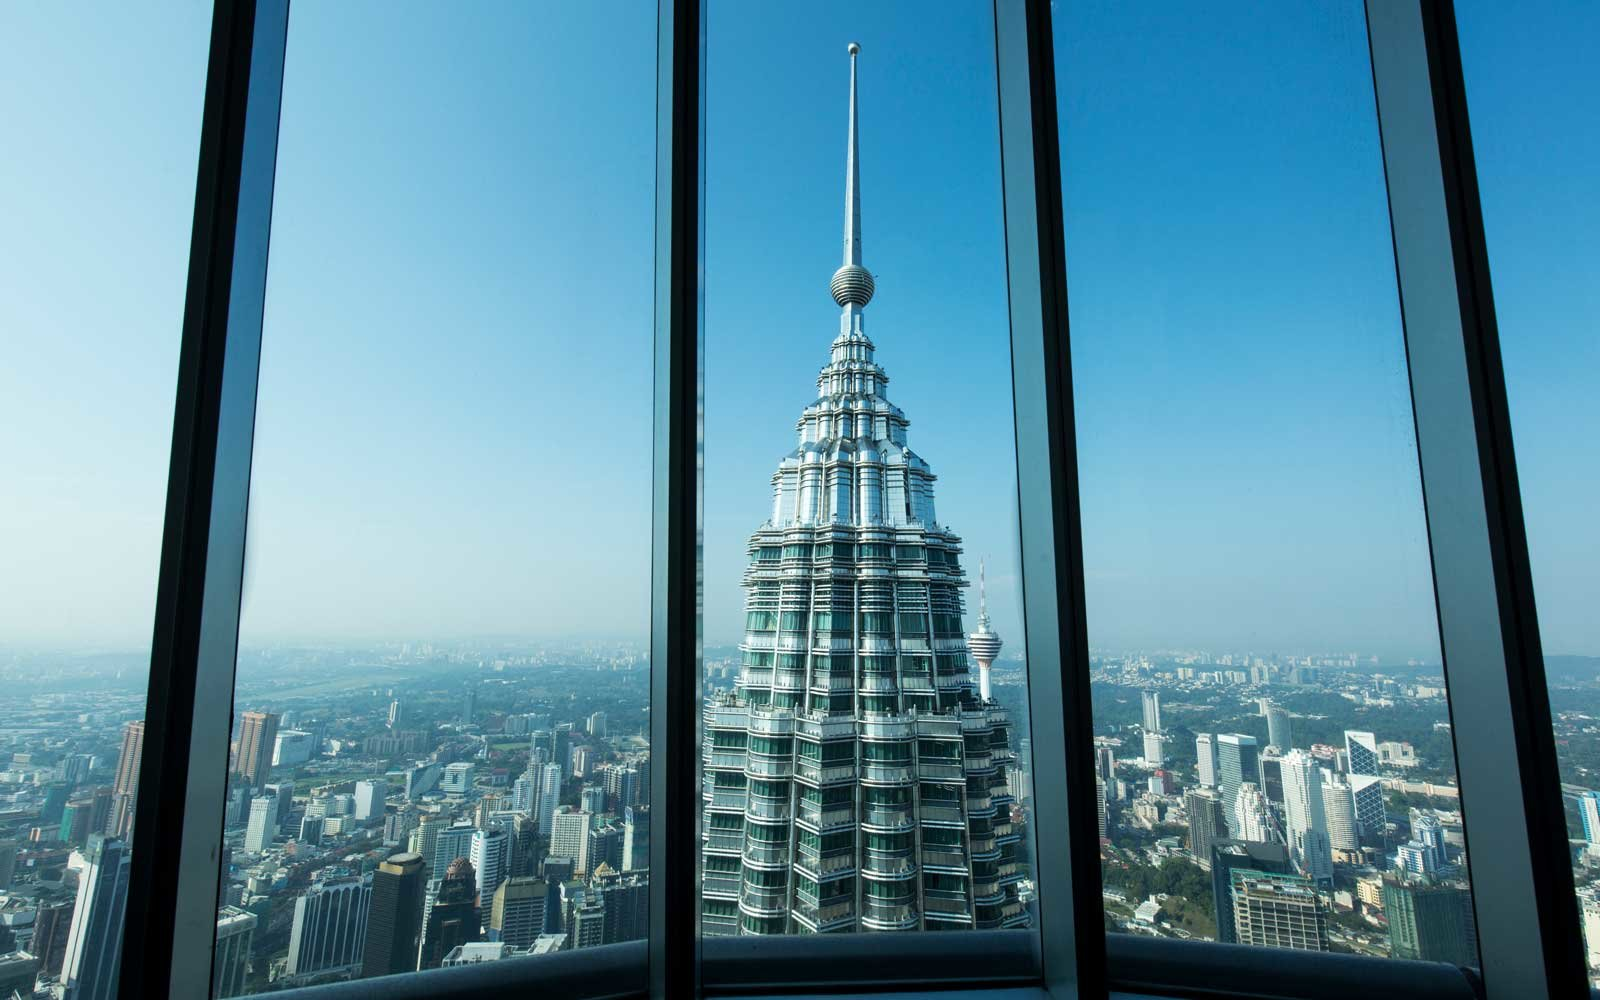 View from Observation Deck on Petronas Towers, Kuala Lumpur, Malaysia